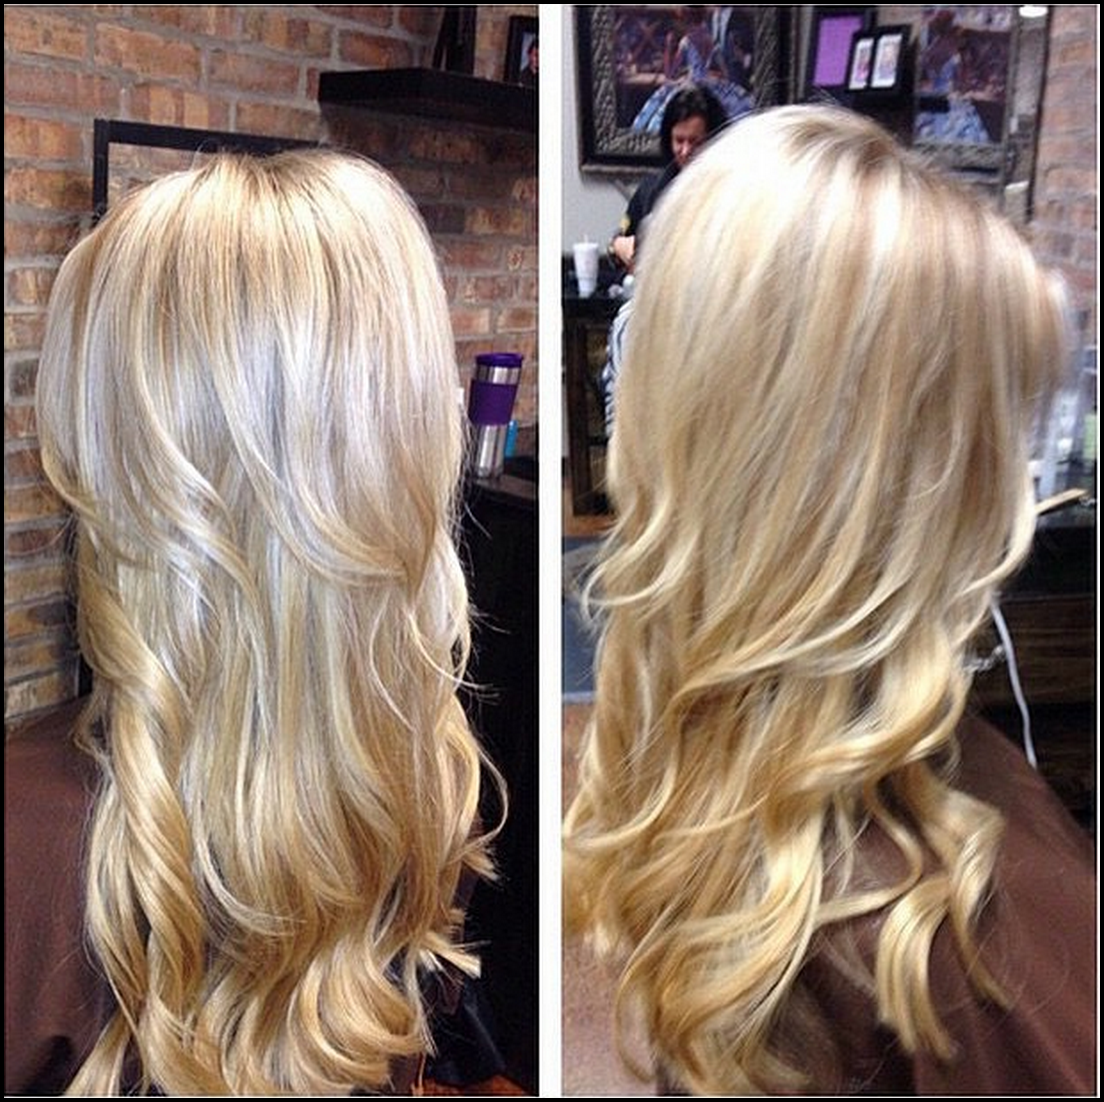 💇 >HAIRSTYLES Popular Hairstyles Hair Extensions And Extensions